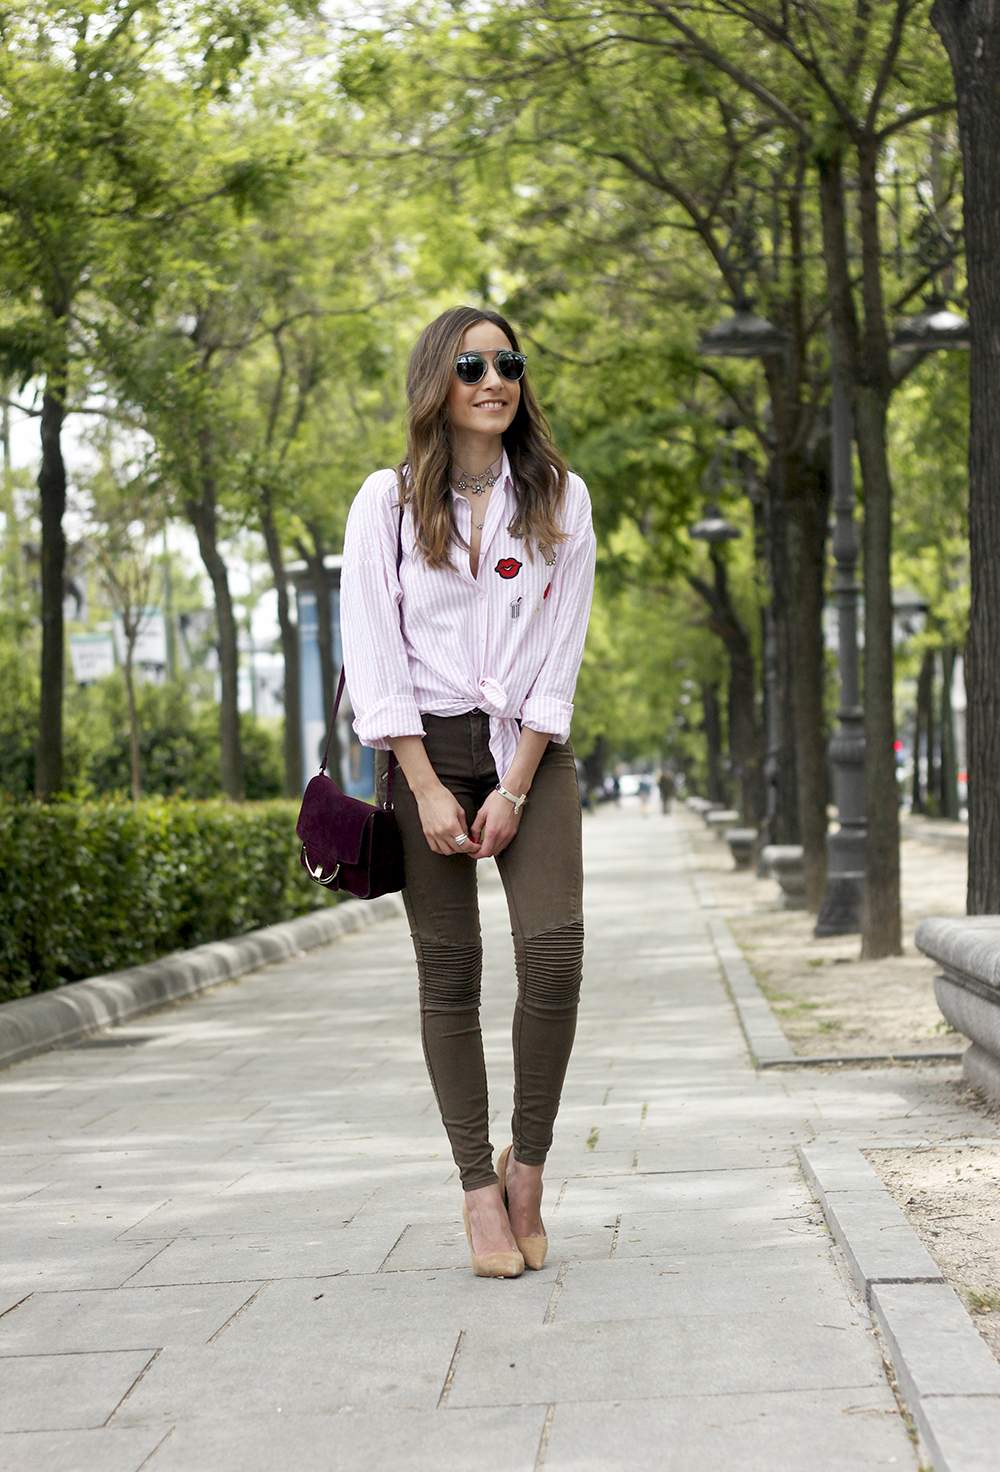 shirt with patches khaki pants nude heels burgundy bag uterqüe accessories style fashion05